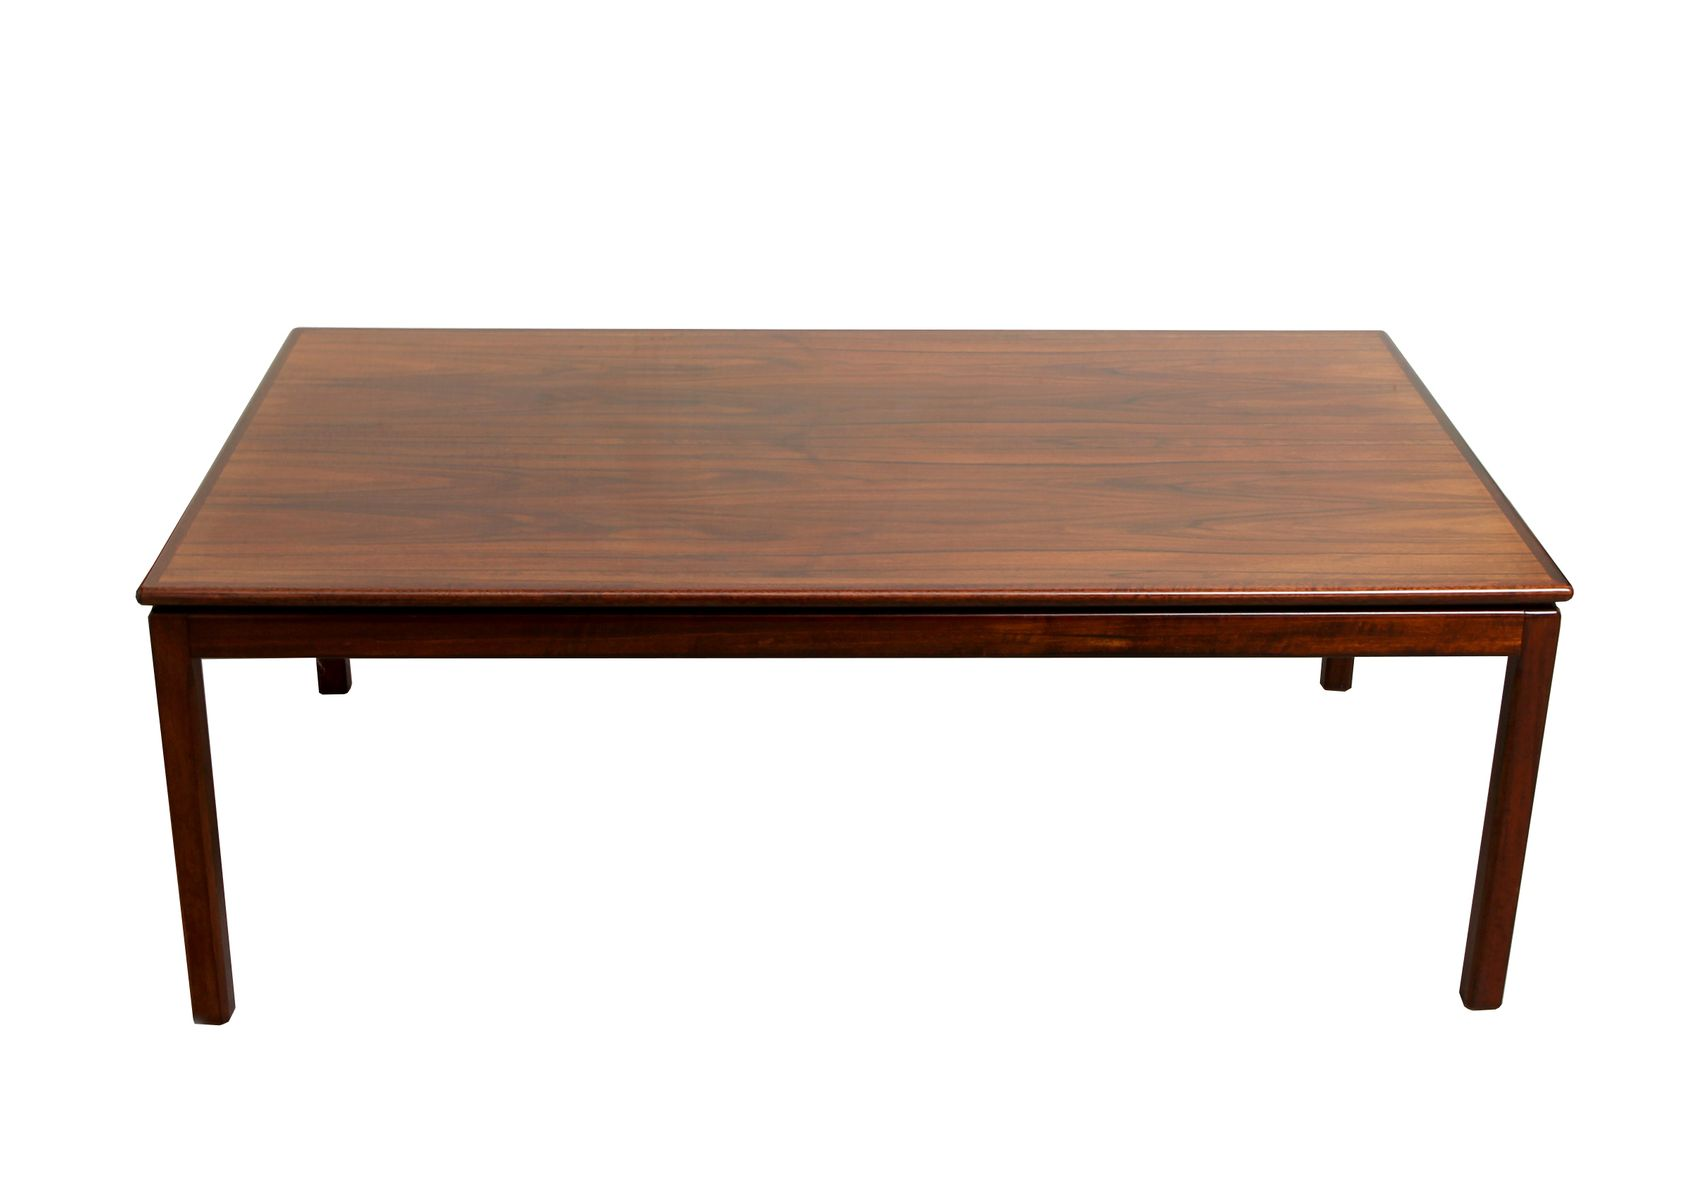 Rosewood Coffee Table from Bruksbo 1960s for sale at Pamono